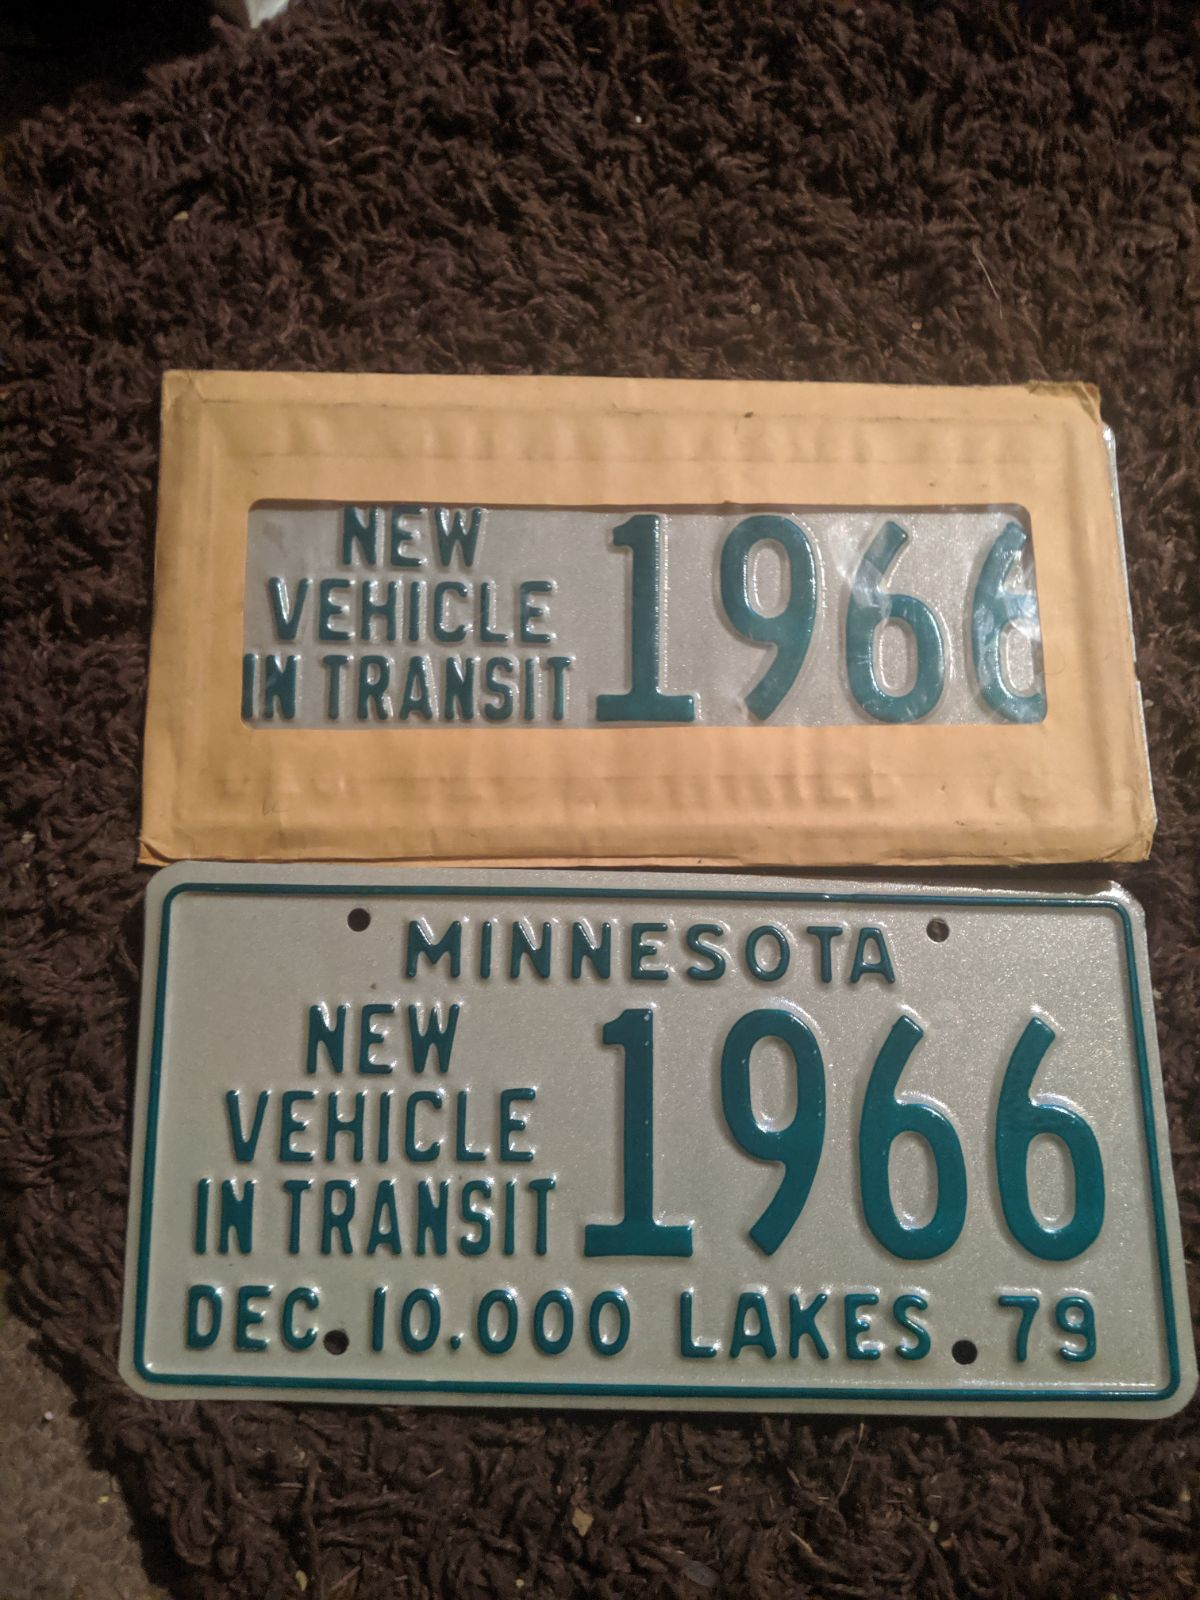 Vintage Minnesota license plates